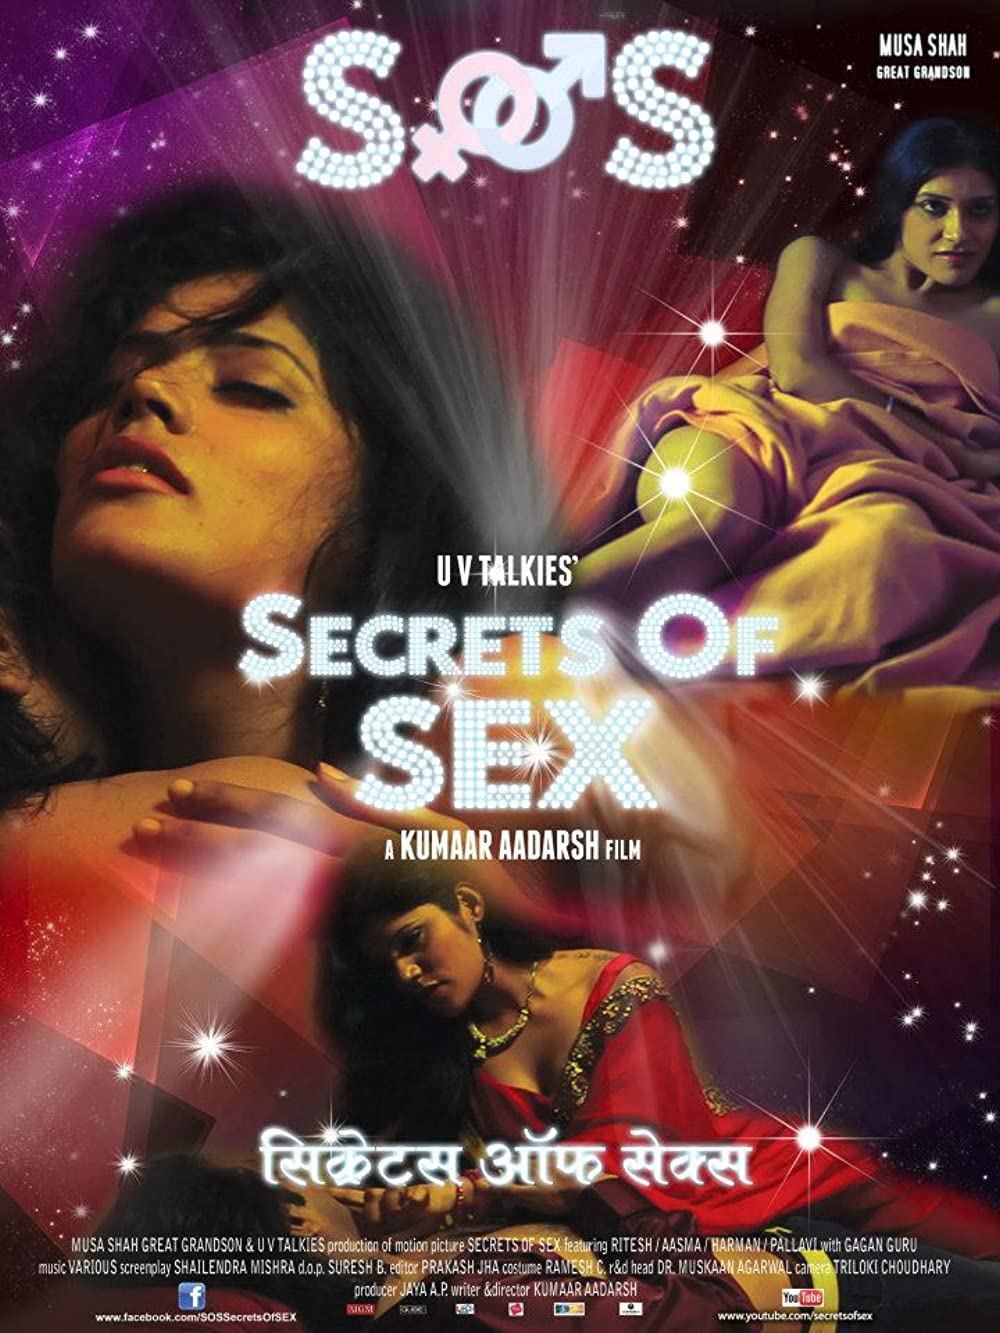 18+ SOS Secrets of Sex 2020 Hindi Full Hot Movie 720p HDRip ESubs 600MB x264 AAC